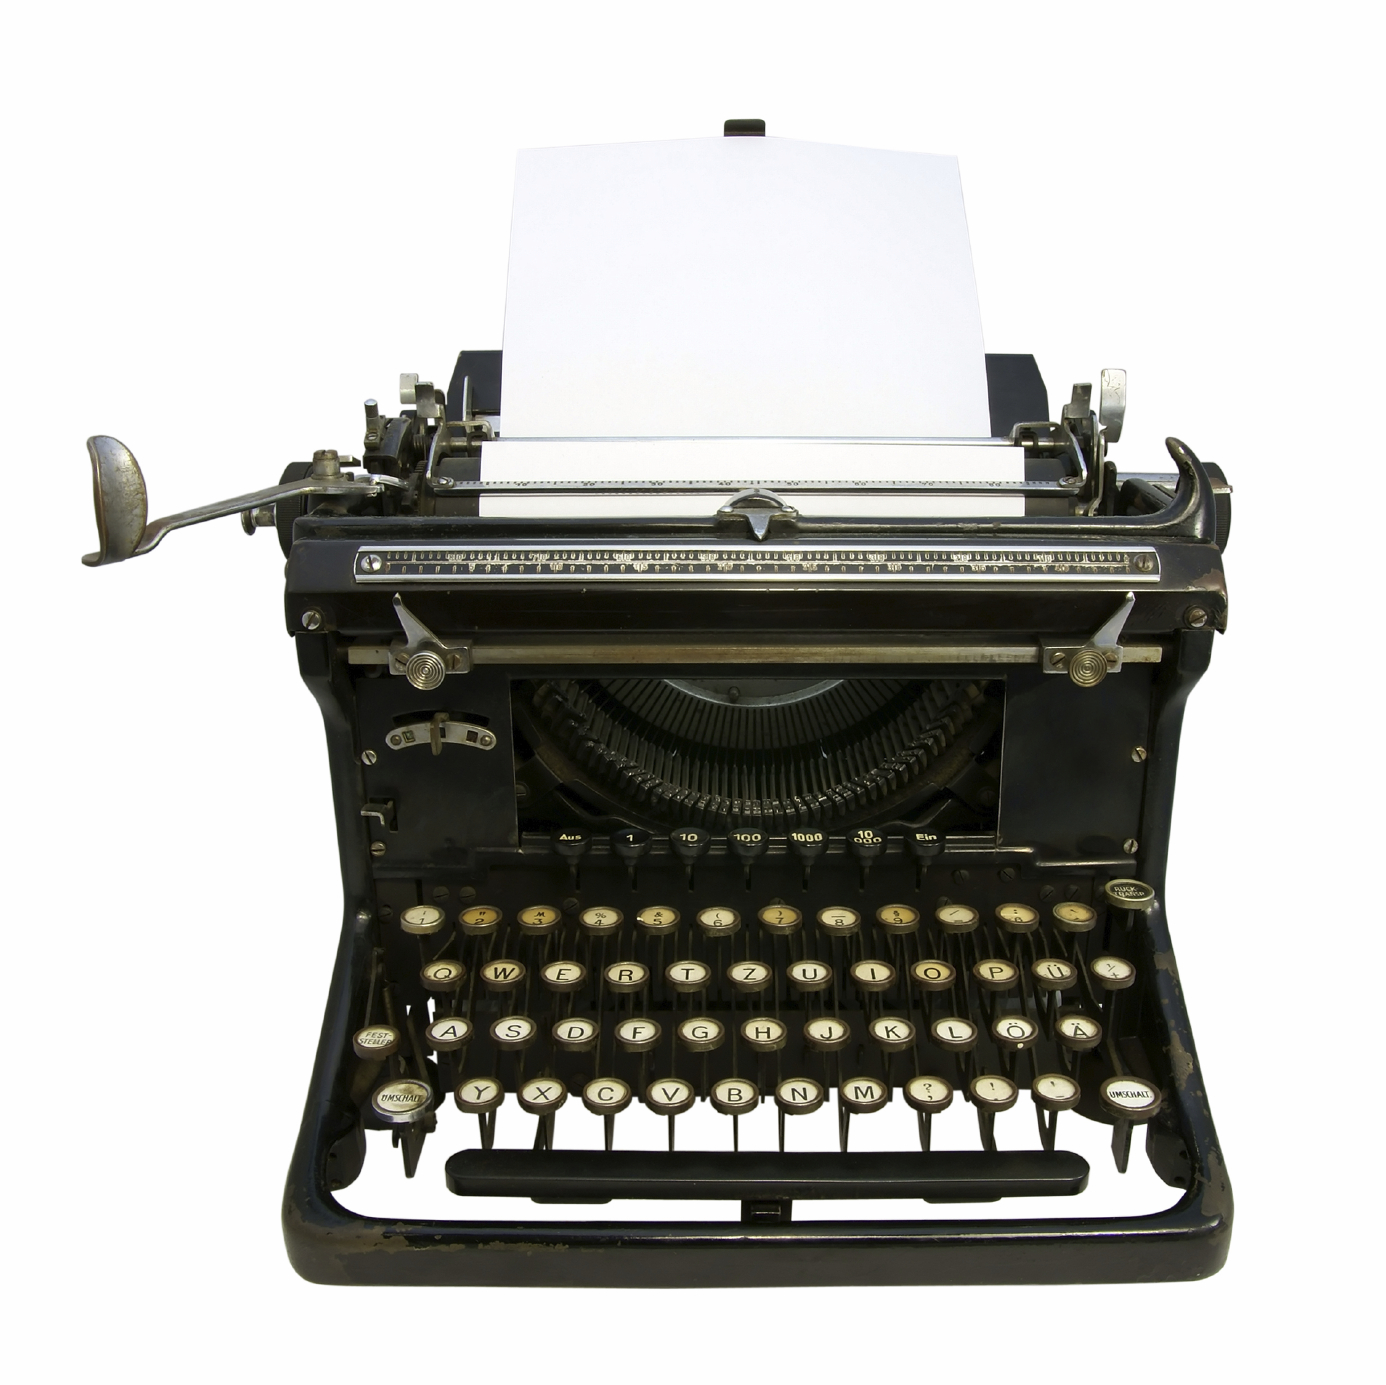 Old typewriter with clipping path